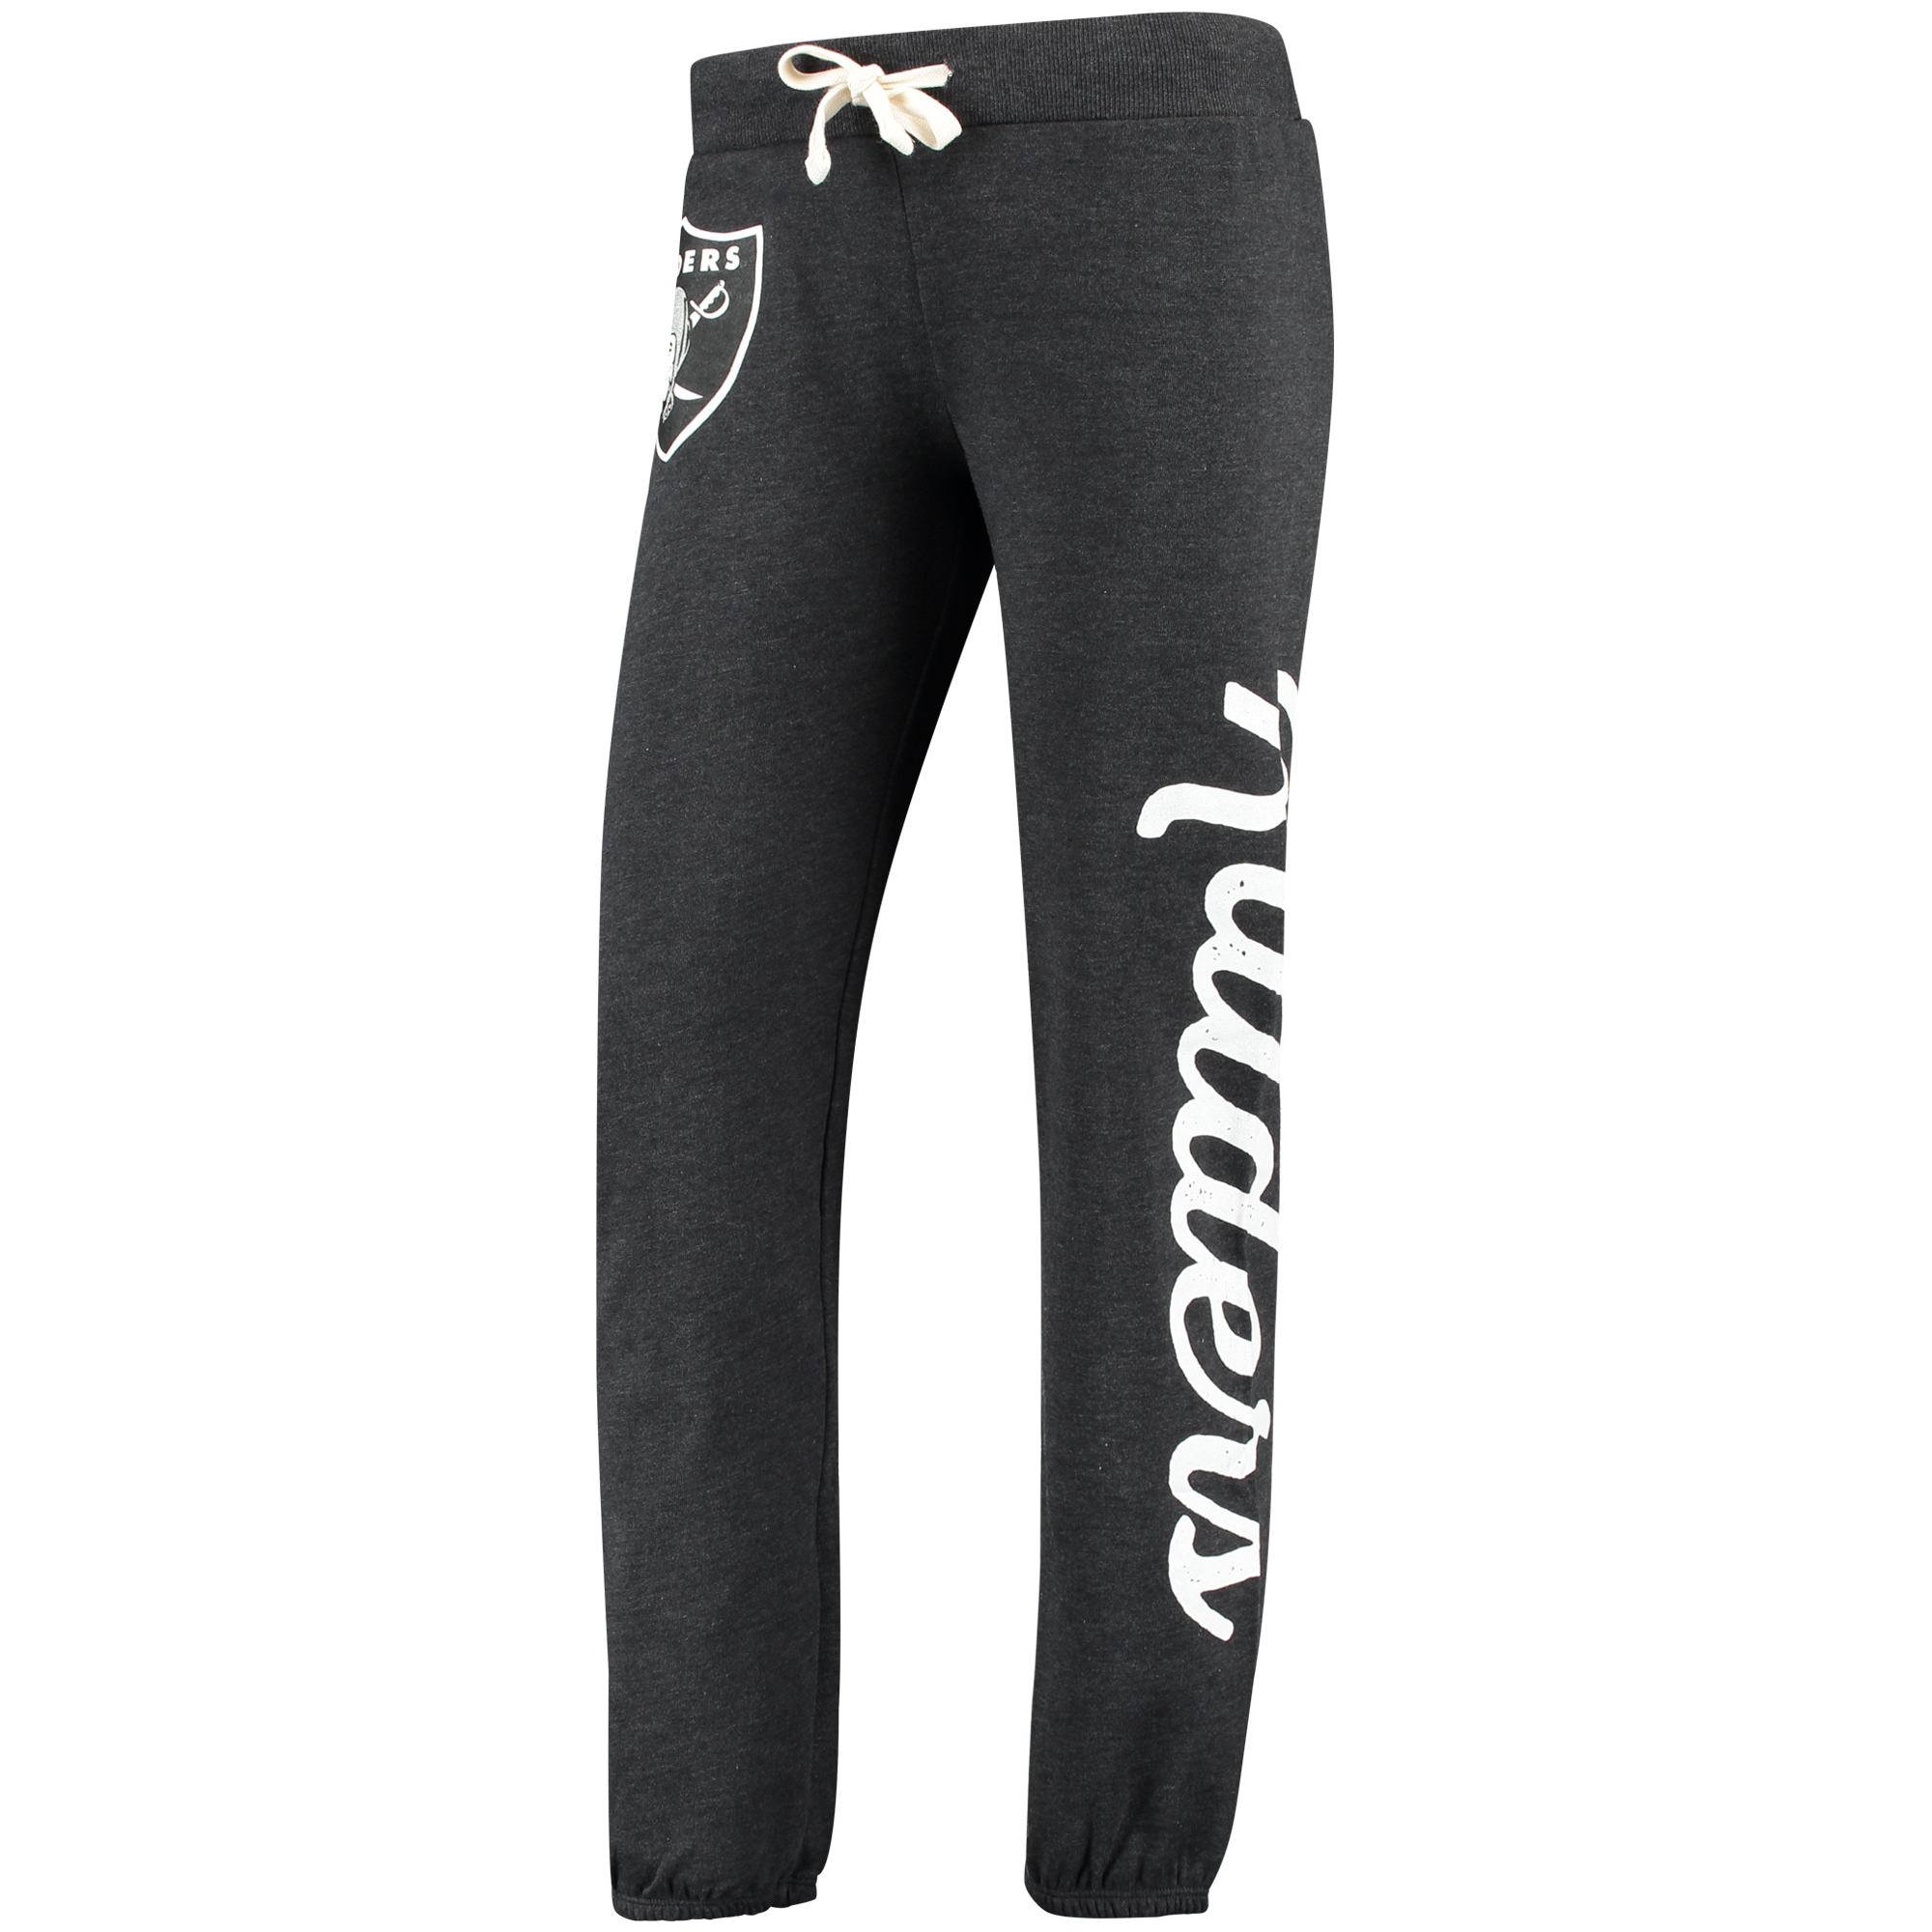 Oakland Raiders G-III 4Her by Carl Banks Women's Scrimmage Pants - Black